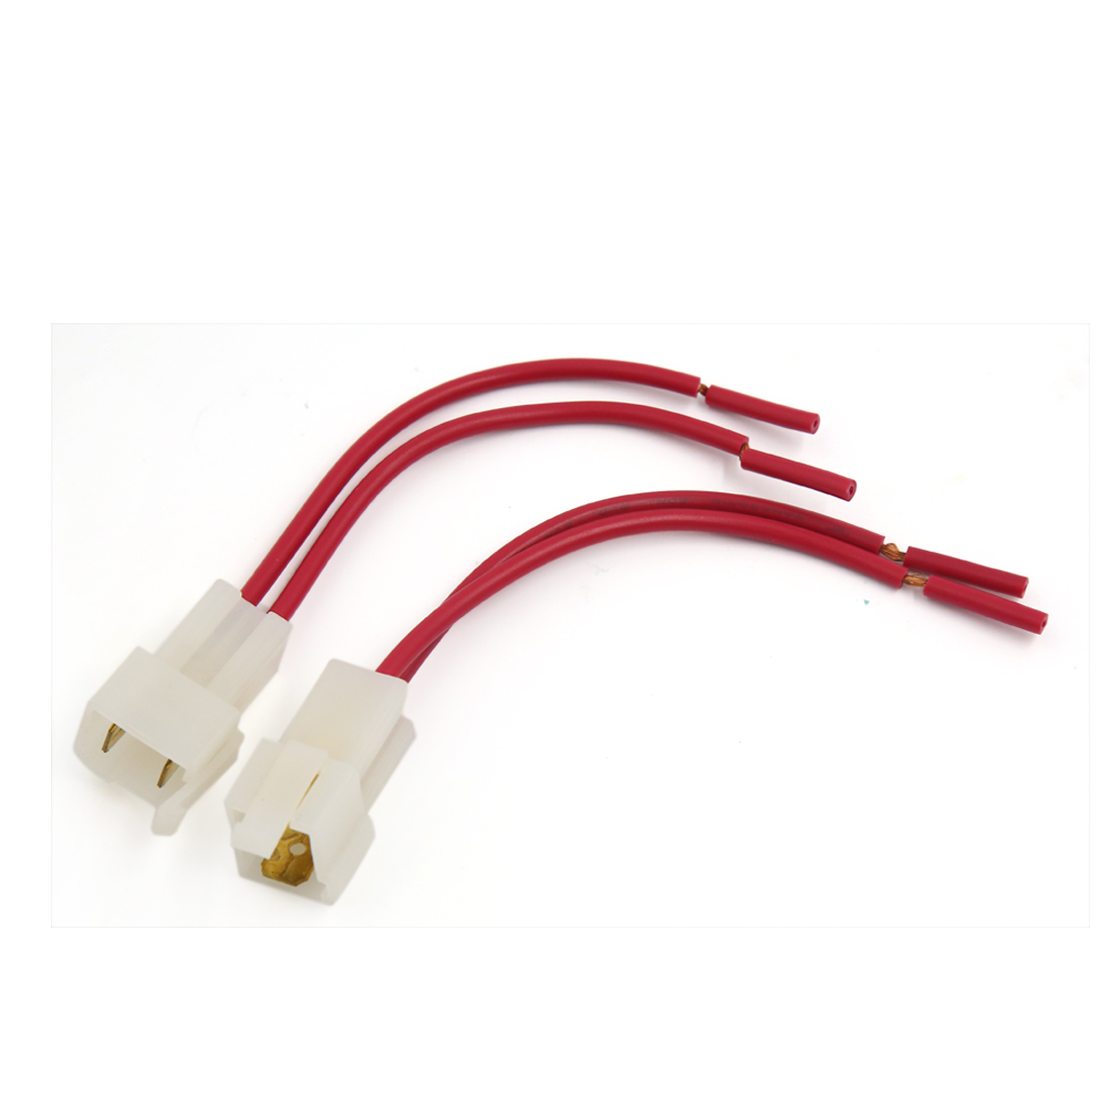 2Pcs Middle Fuse Holder With Cable for Car Truck ATC Blade